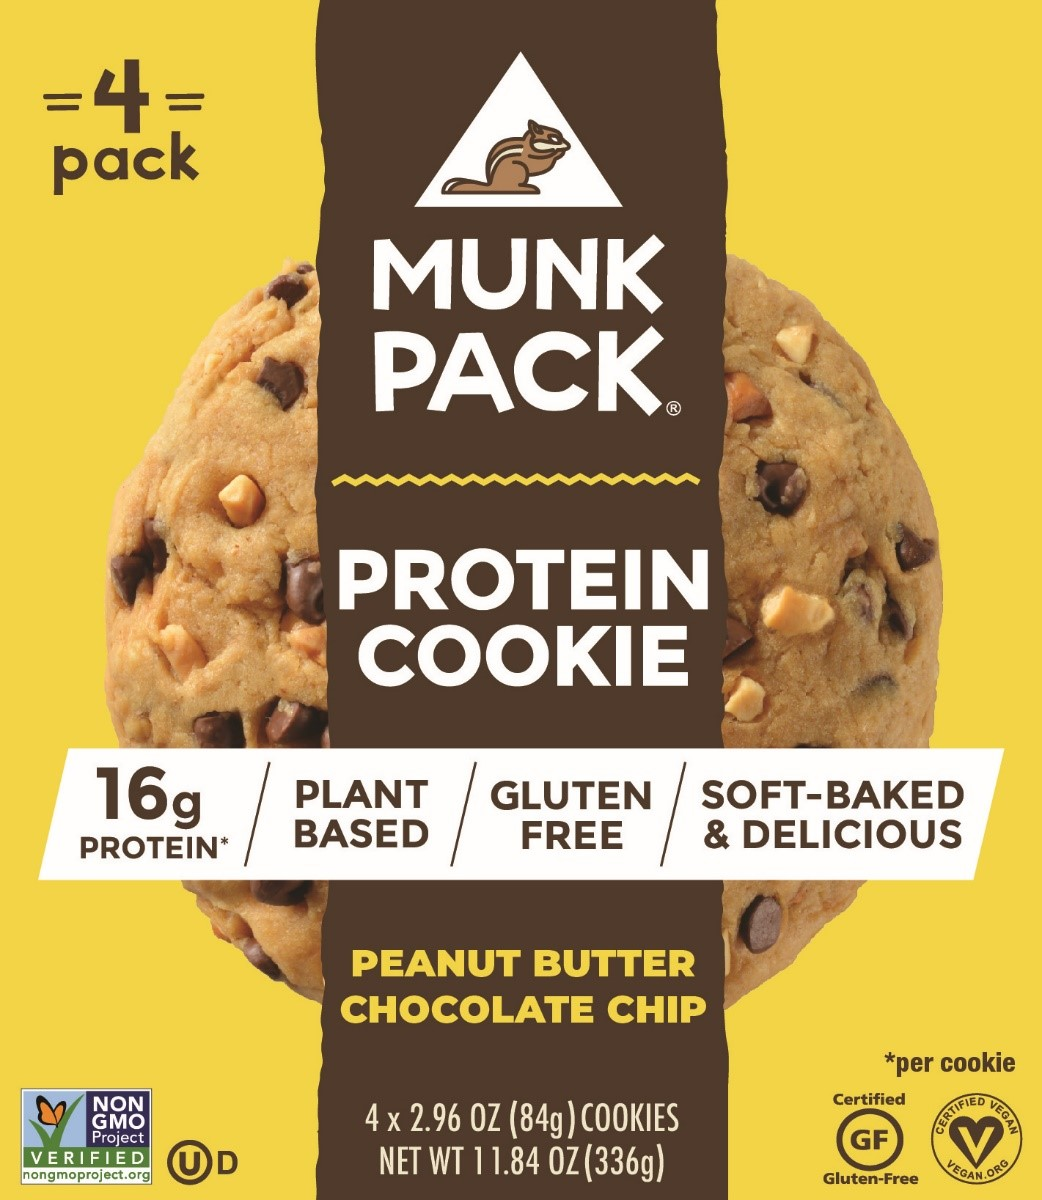 Munk Pack Protein Cookie Peanut Butter Chocolate Chip 4 Ct Walmart Inventory Checker Brickseek